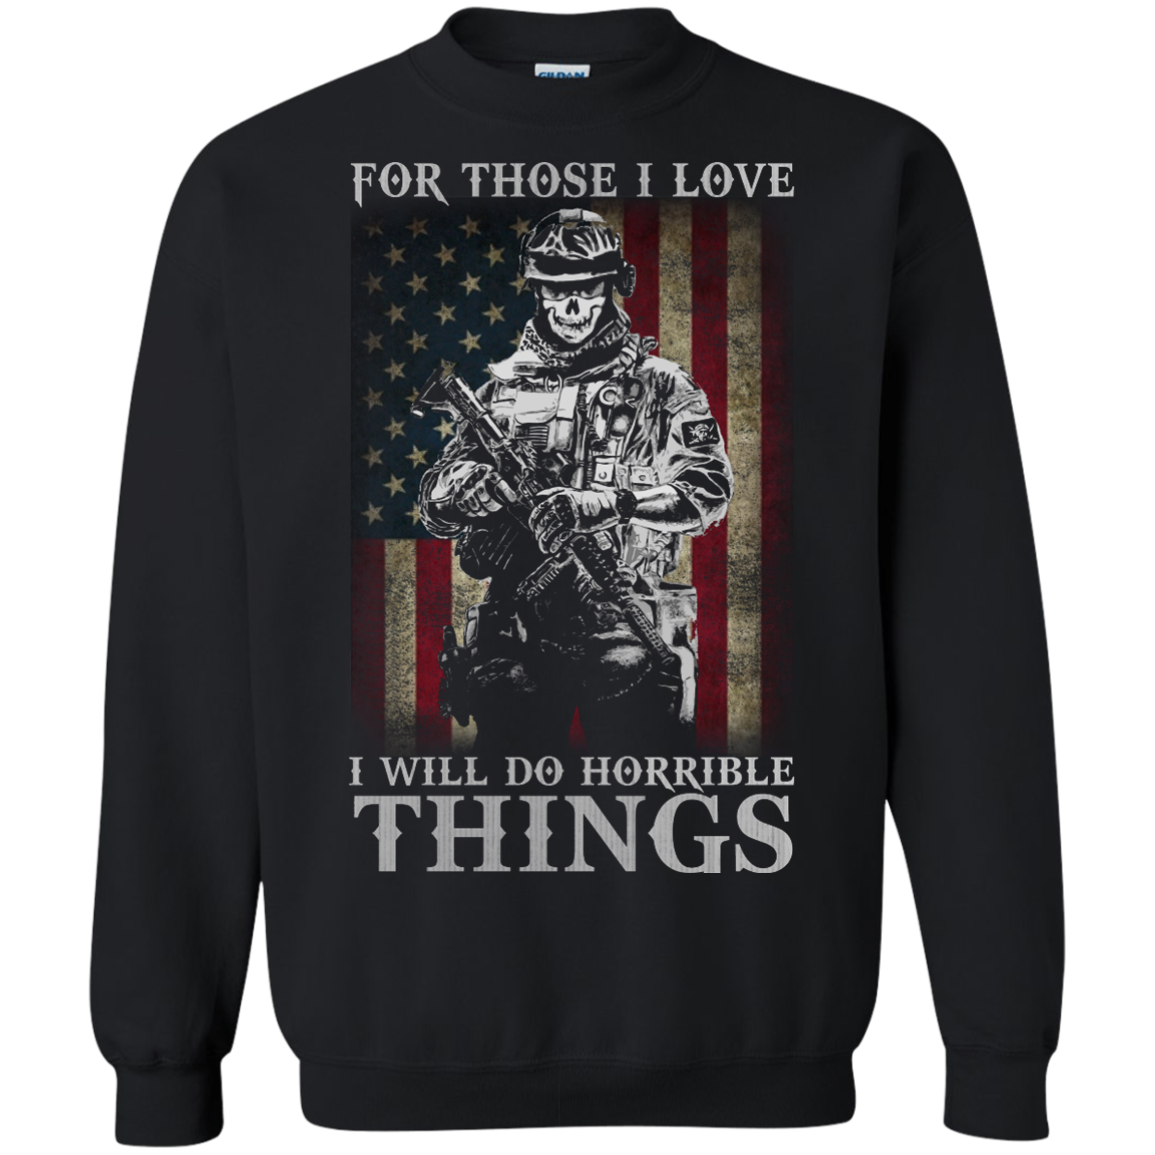 For those I love I will do horrible things shirt, tank, hoodie